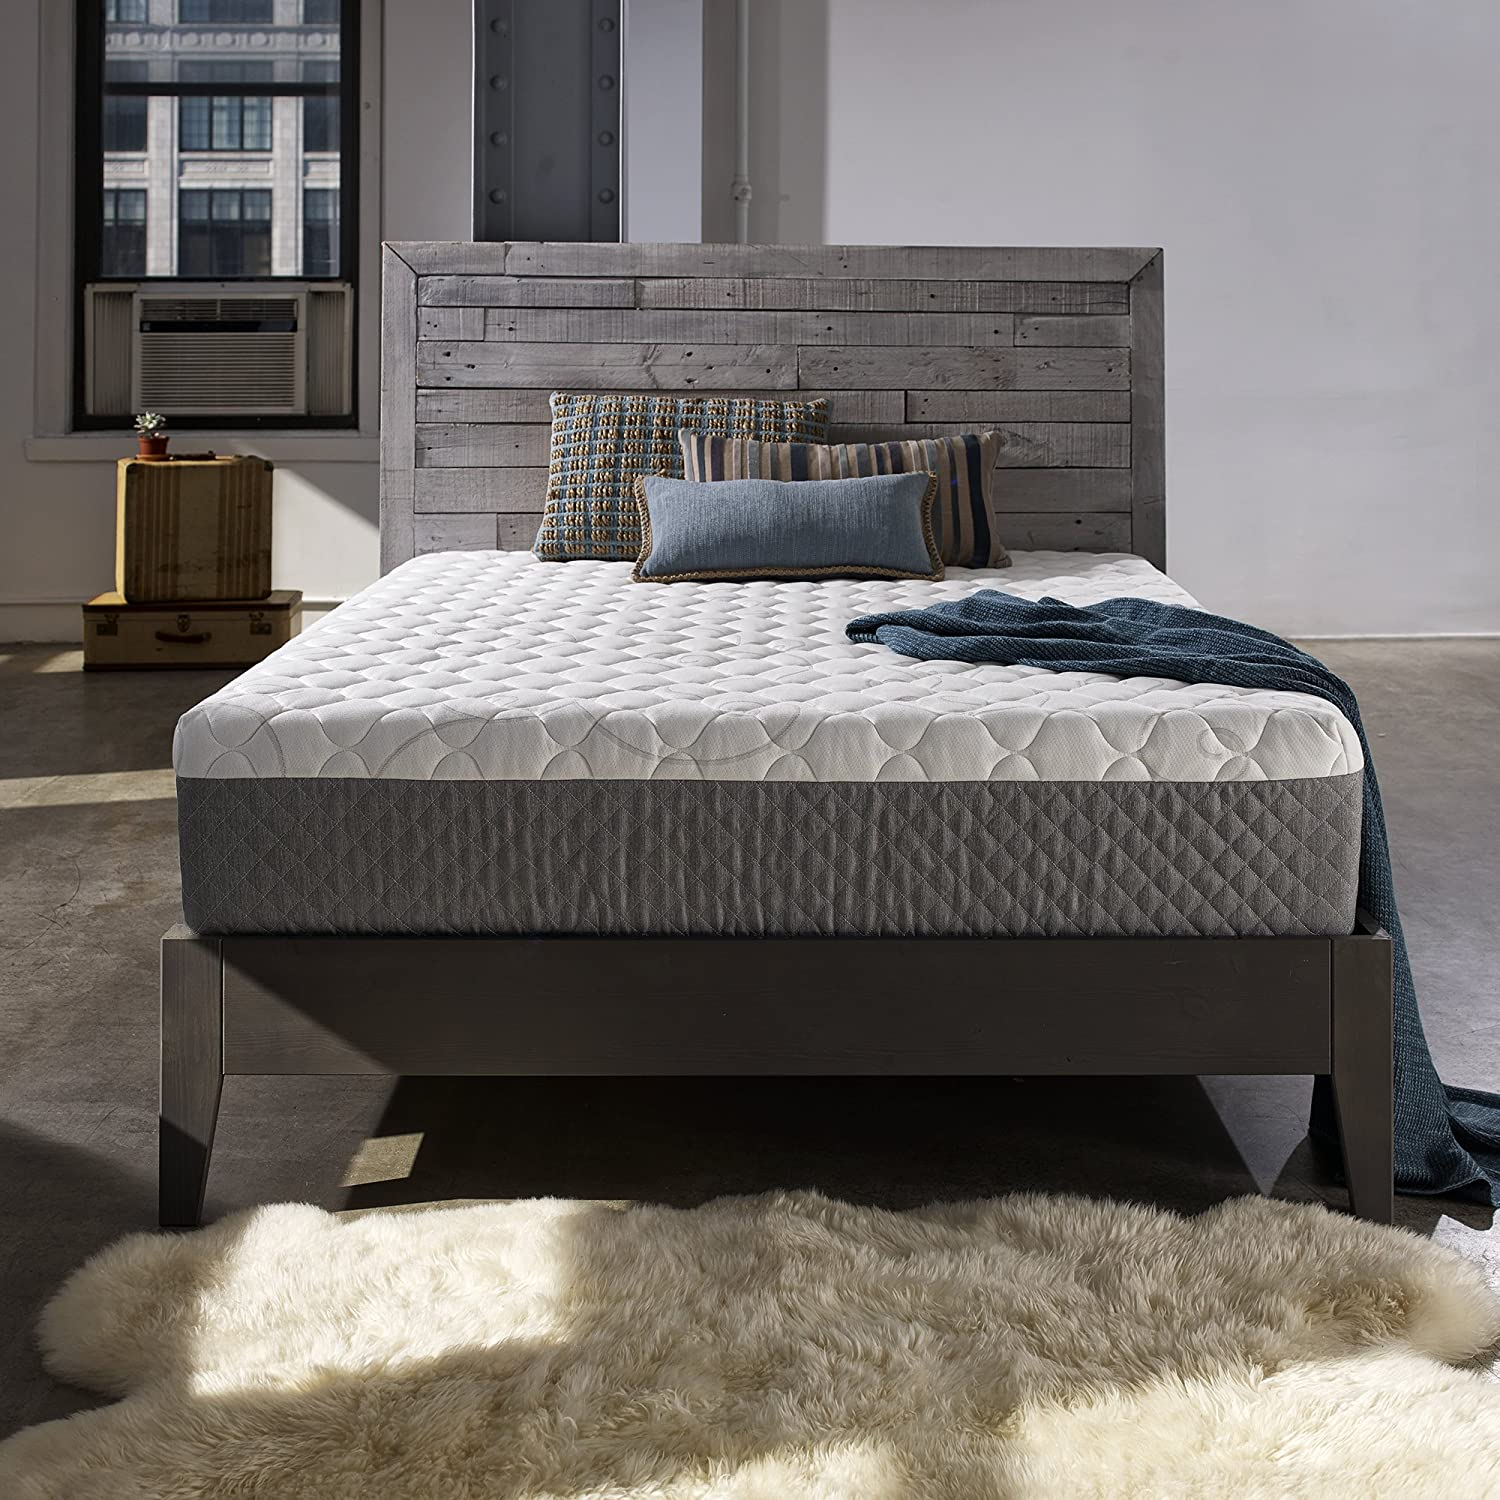 in best sleeper inspiration for decor tempurpedic with mattress great side bedroom master sleepers